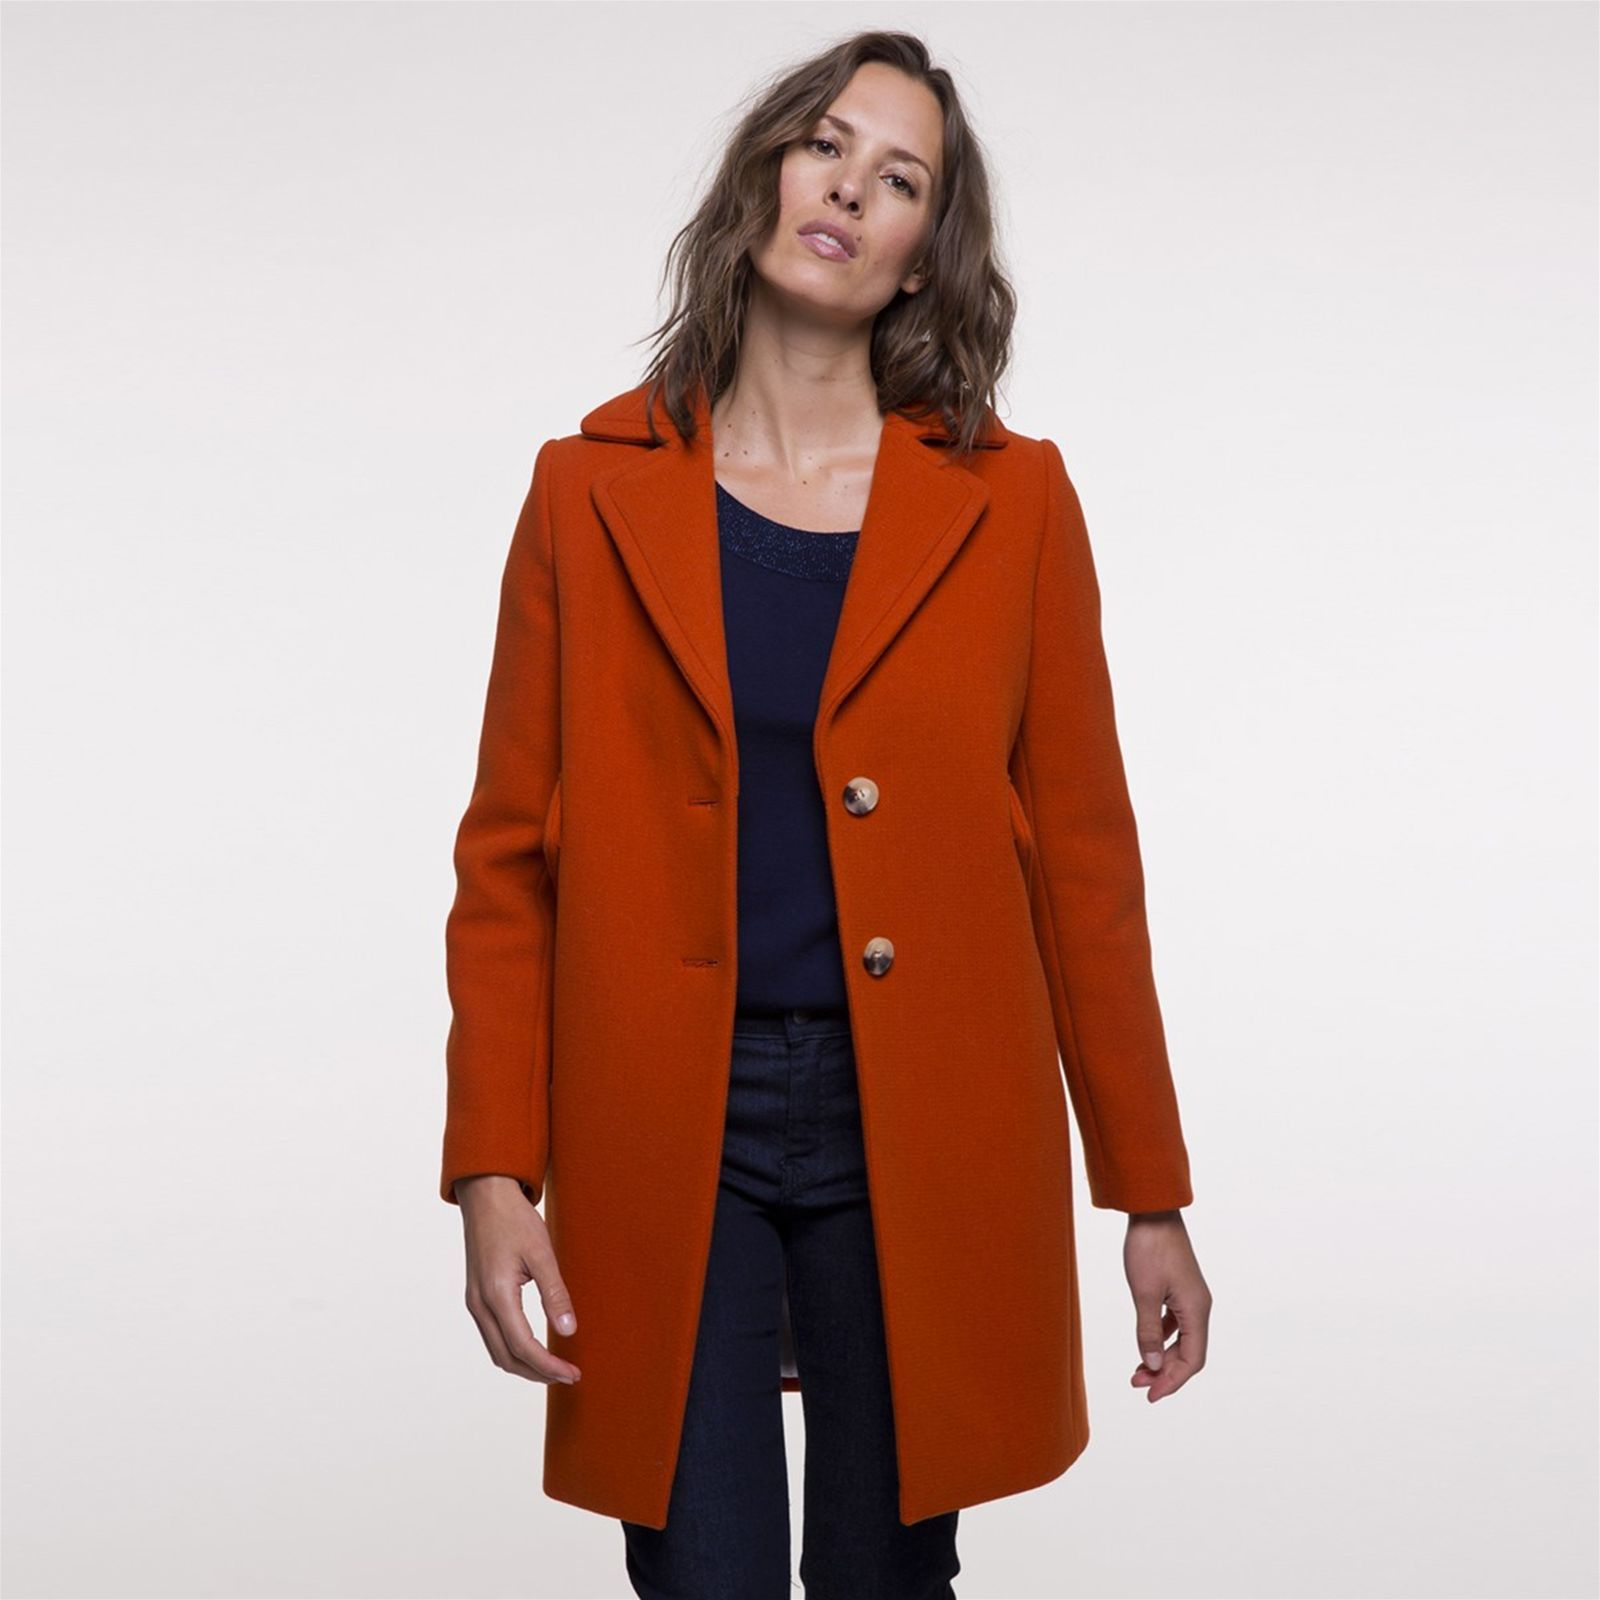 Trench and coat Manteau mi-long en laine - orange   BrandAlley 3212c66e6e14